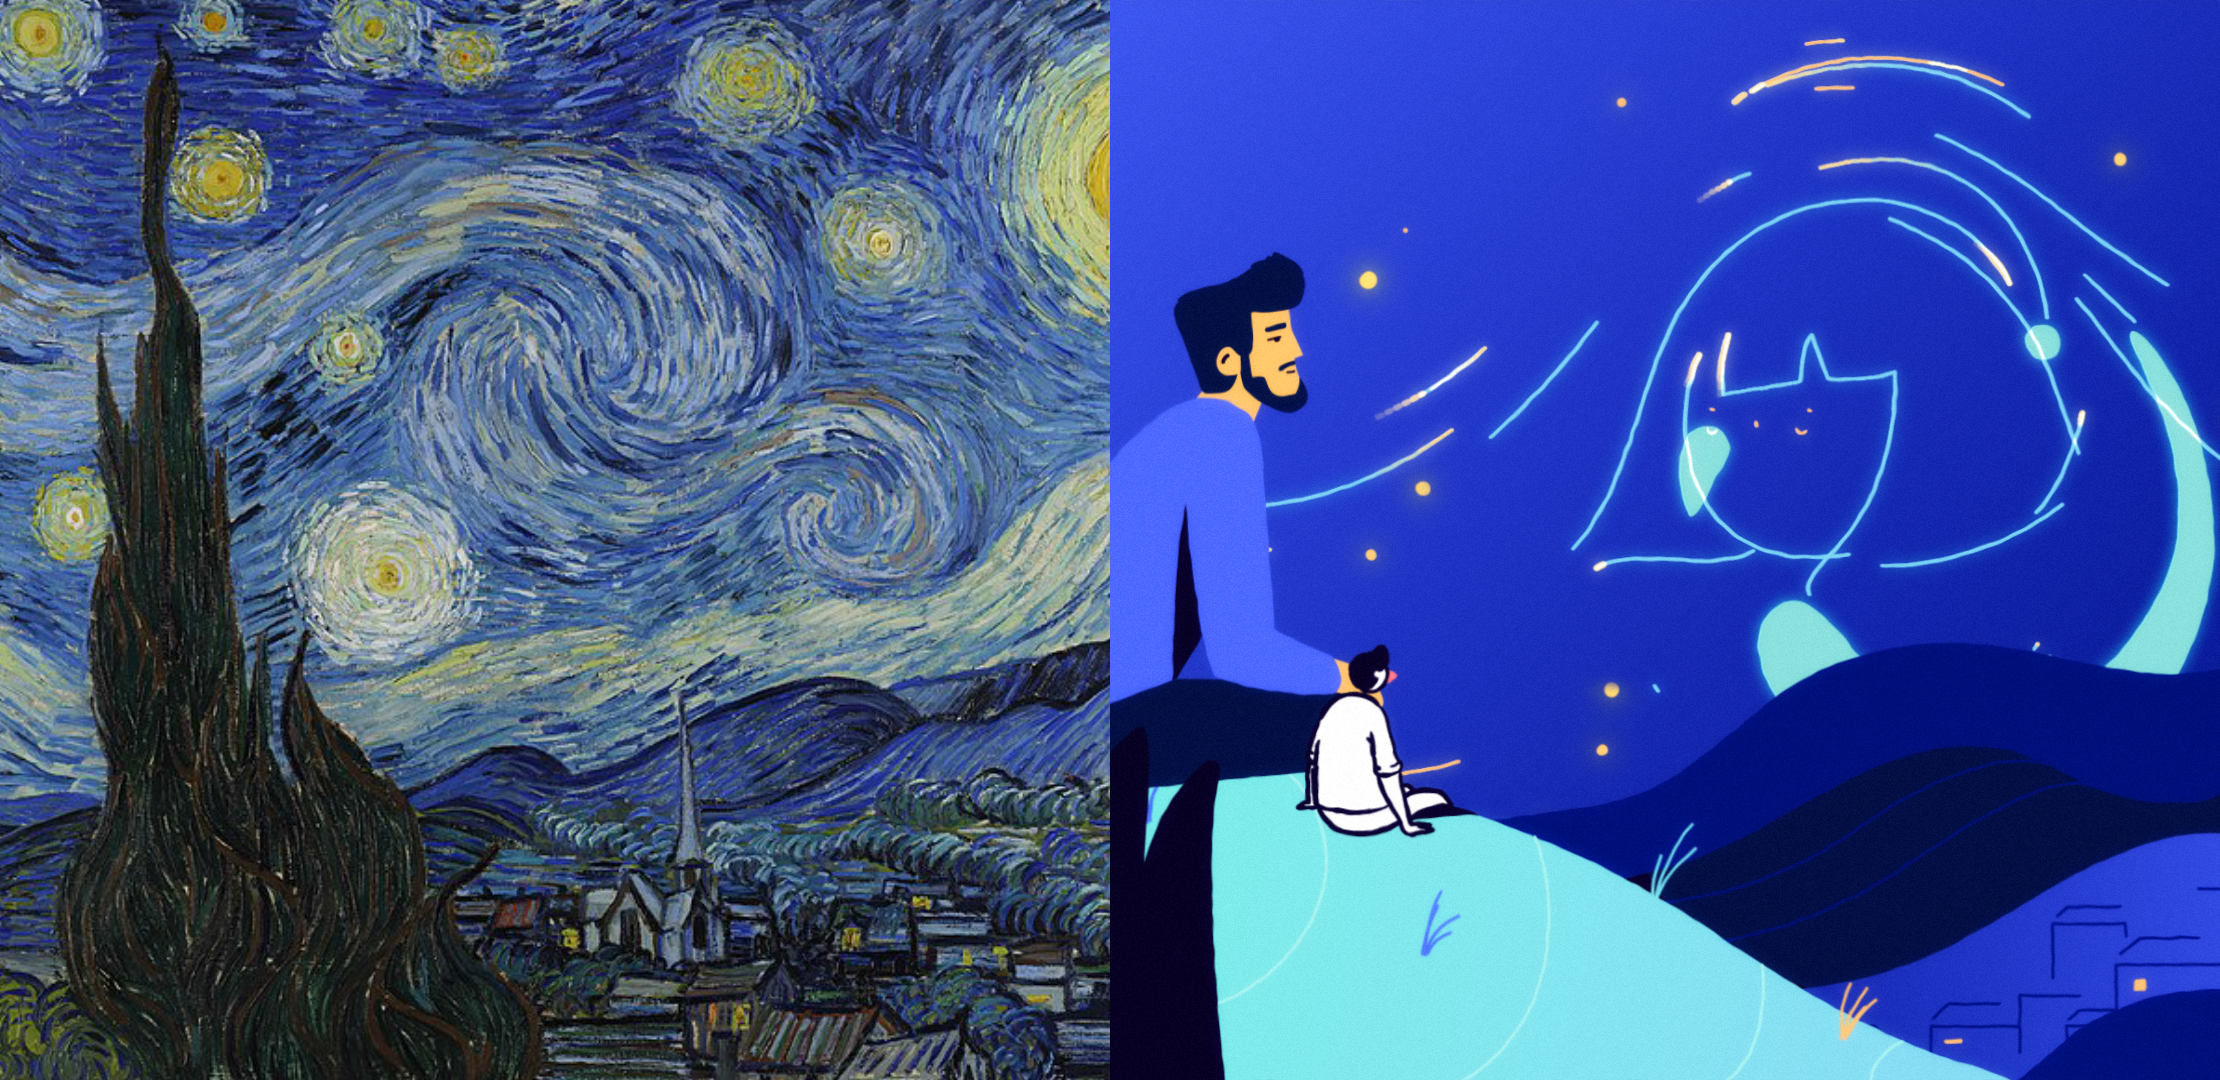 The Starry Night by Van Gogh original and illustration